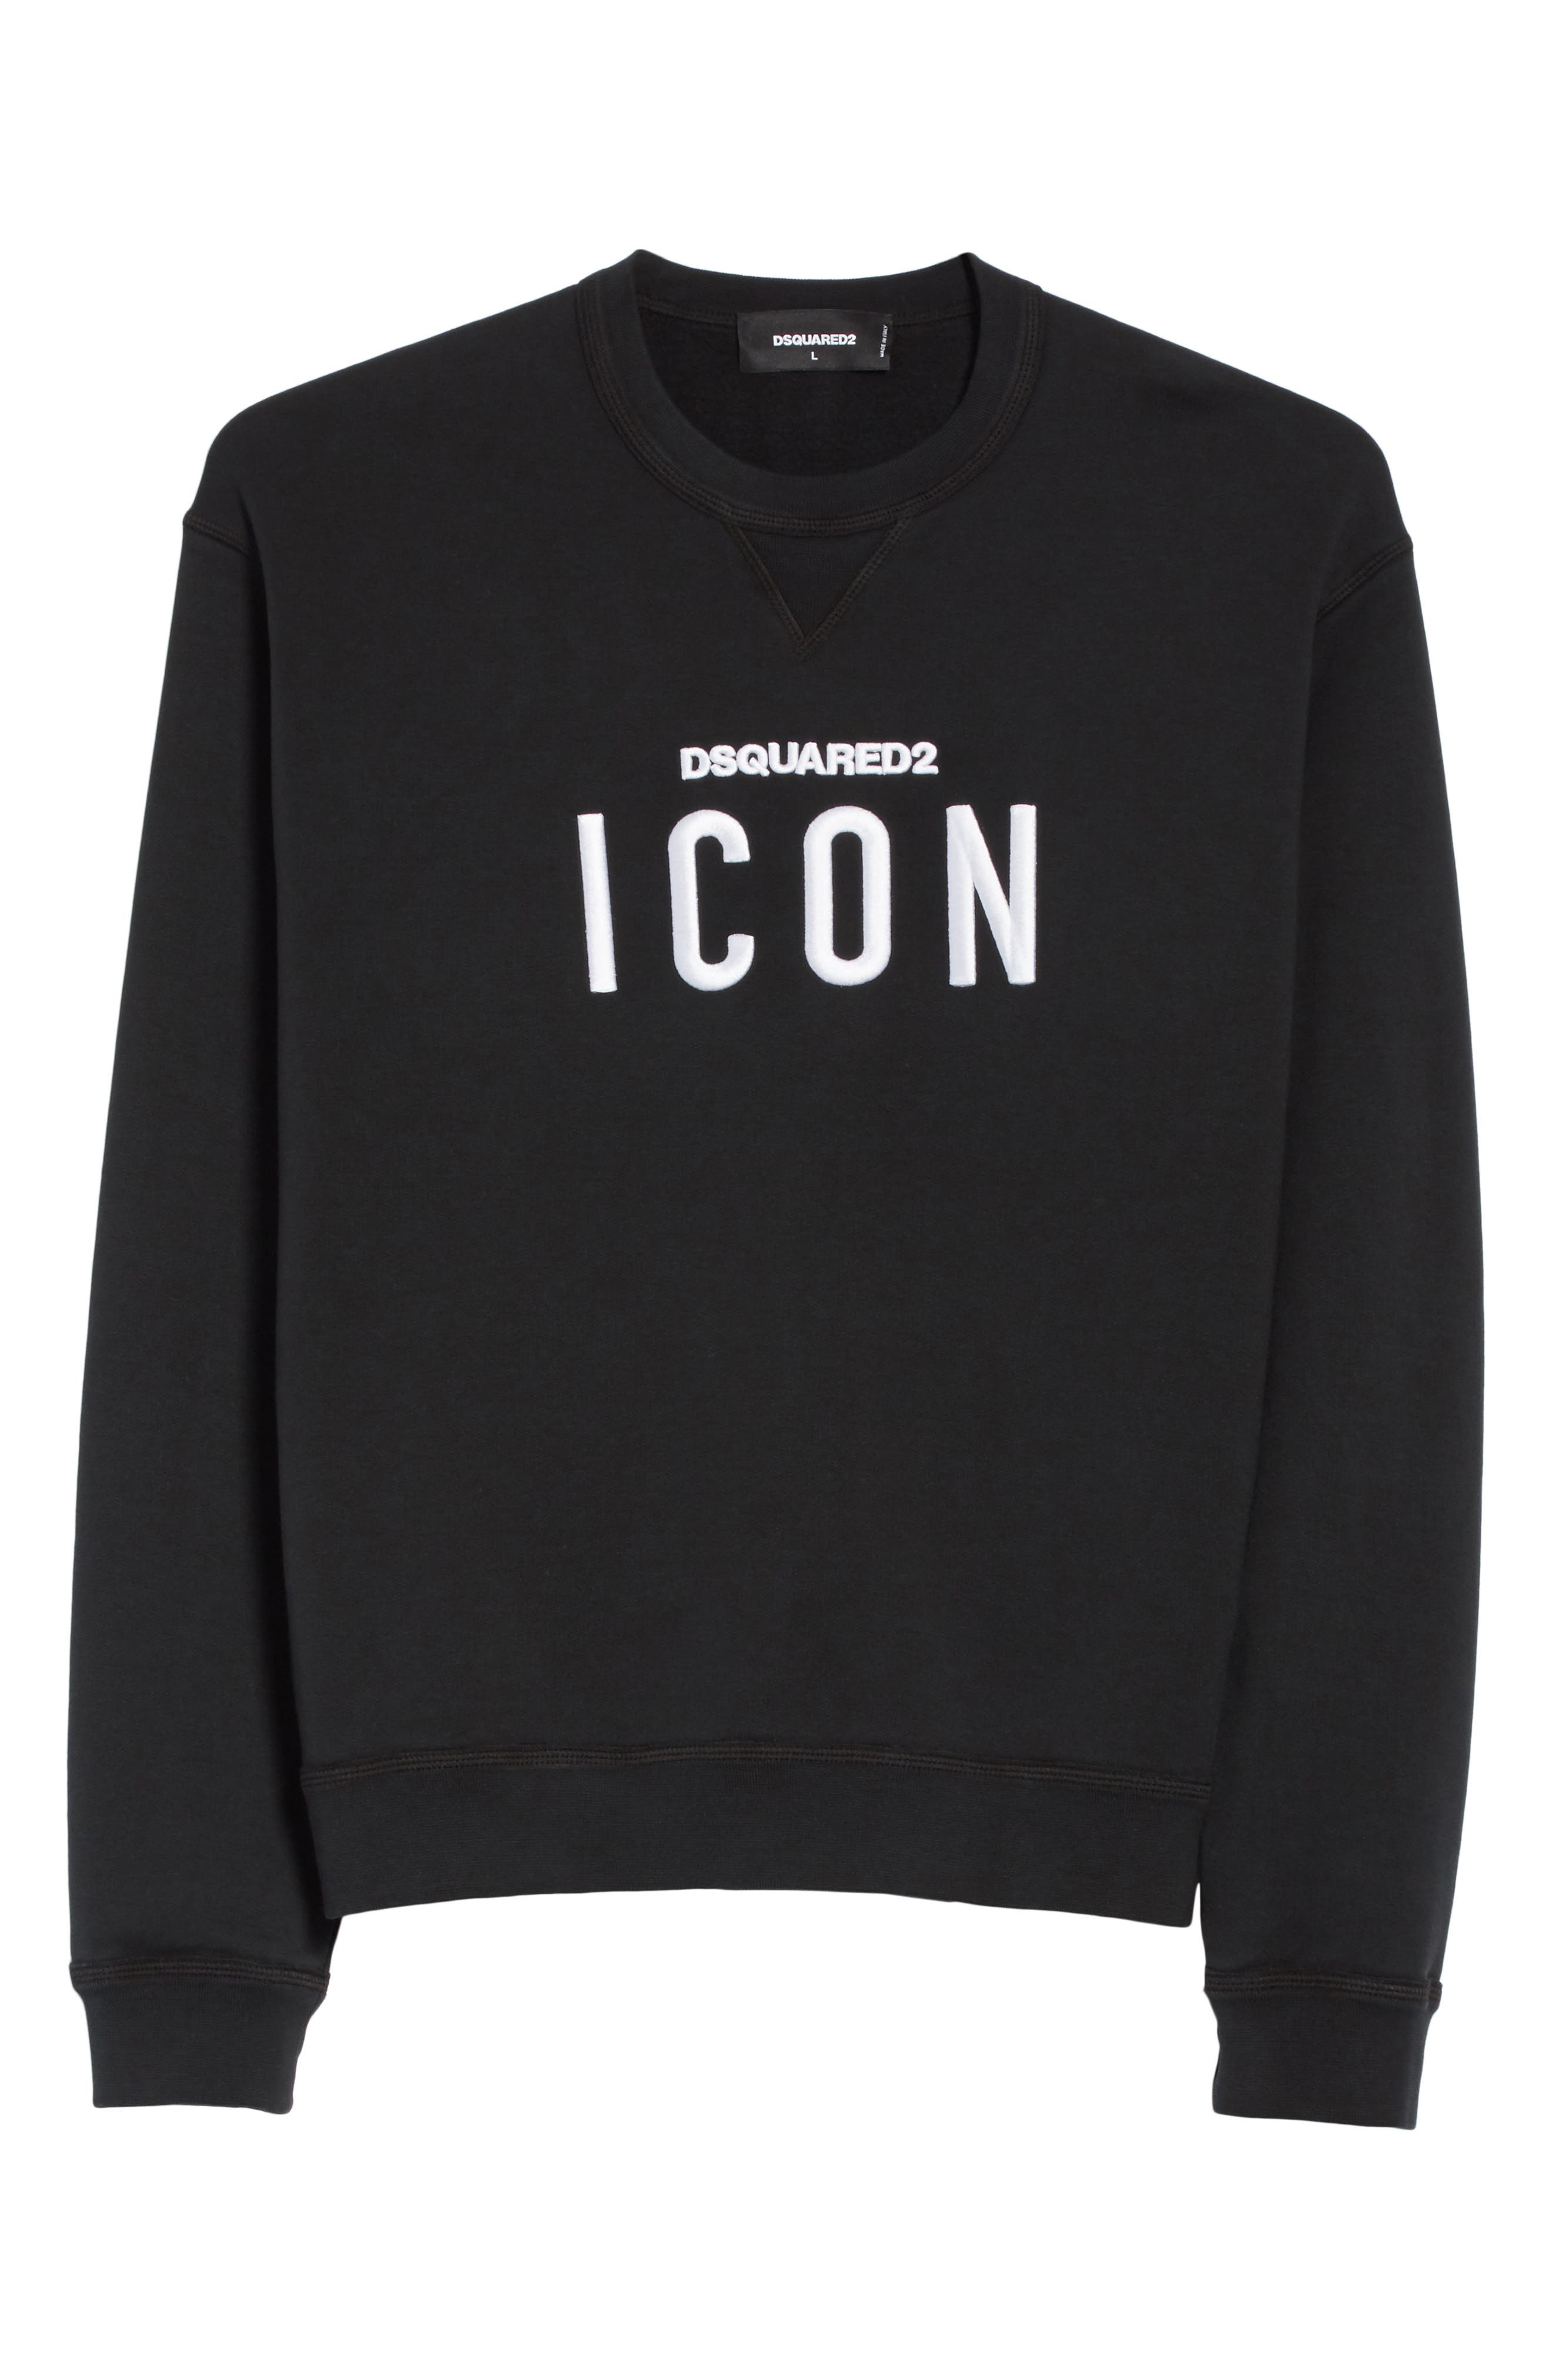 Icon Embroidered Crewneck Sweatshirt,                             Alternate thumbnail 6, color,                             001